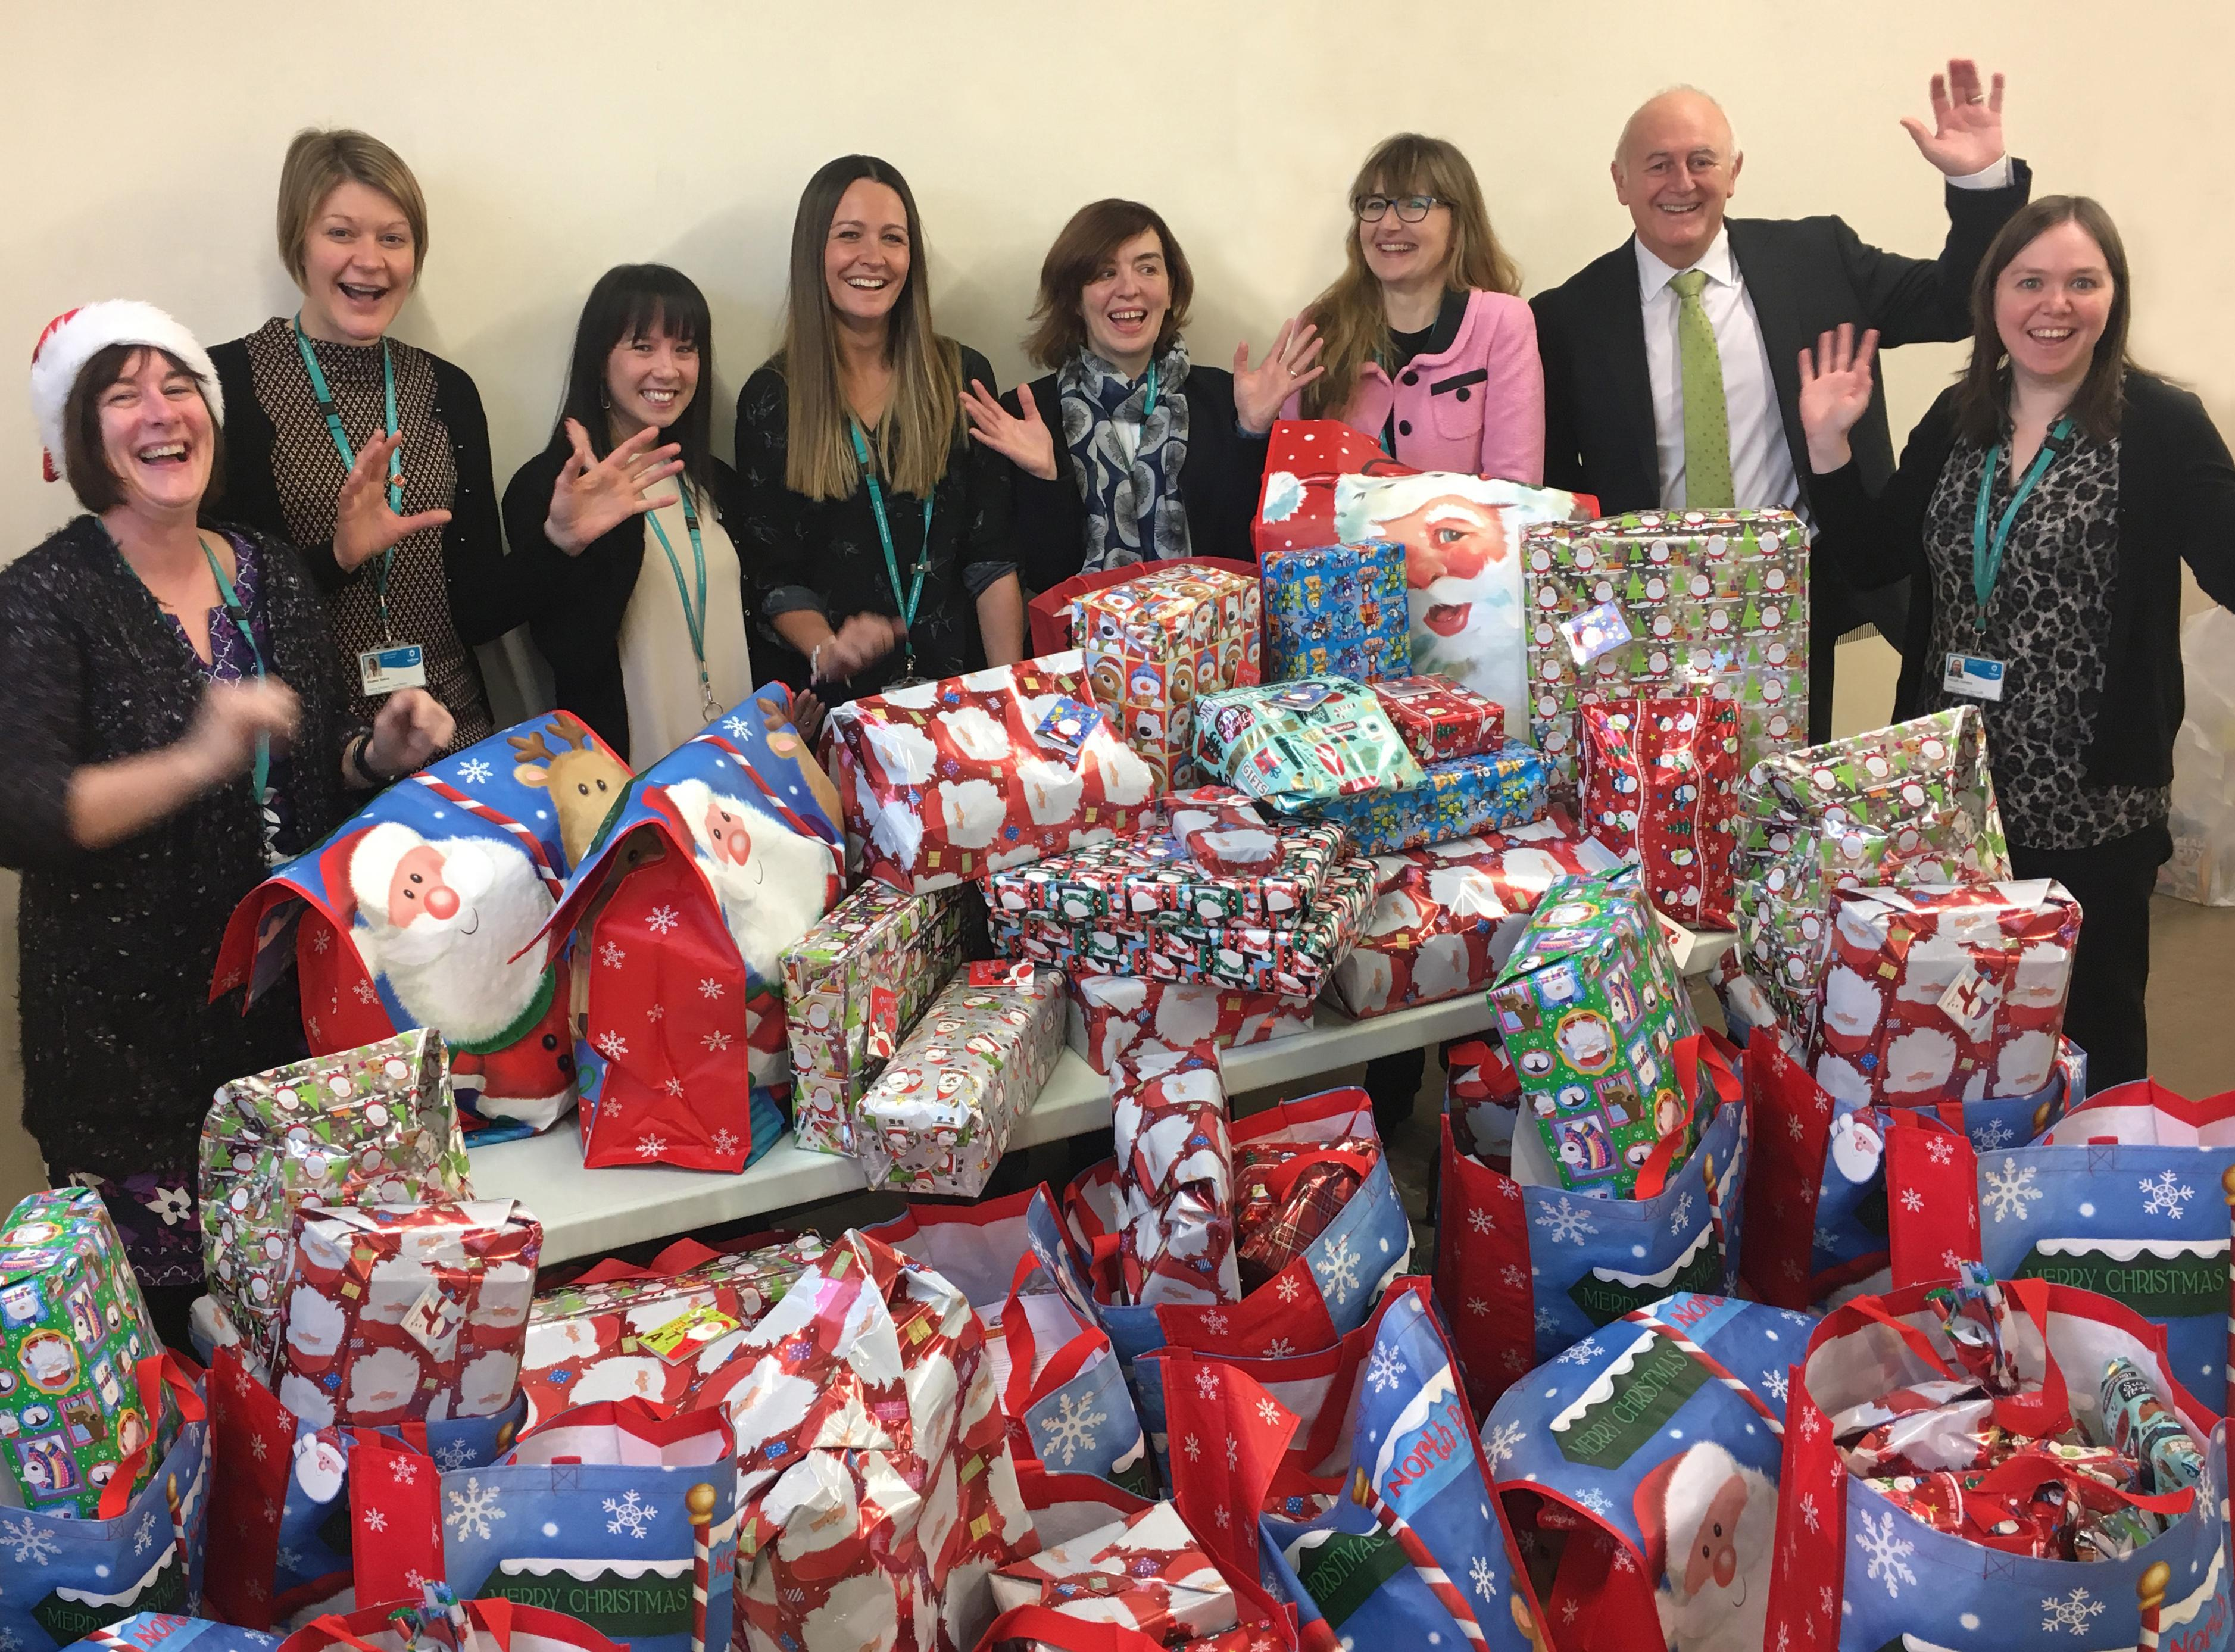 Oldham Council workers dug deep this Christmas, donating 320 presents for local young people who might otherwise receive nothing.